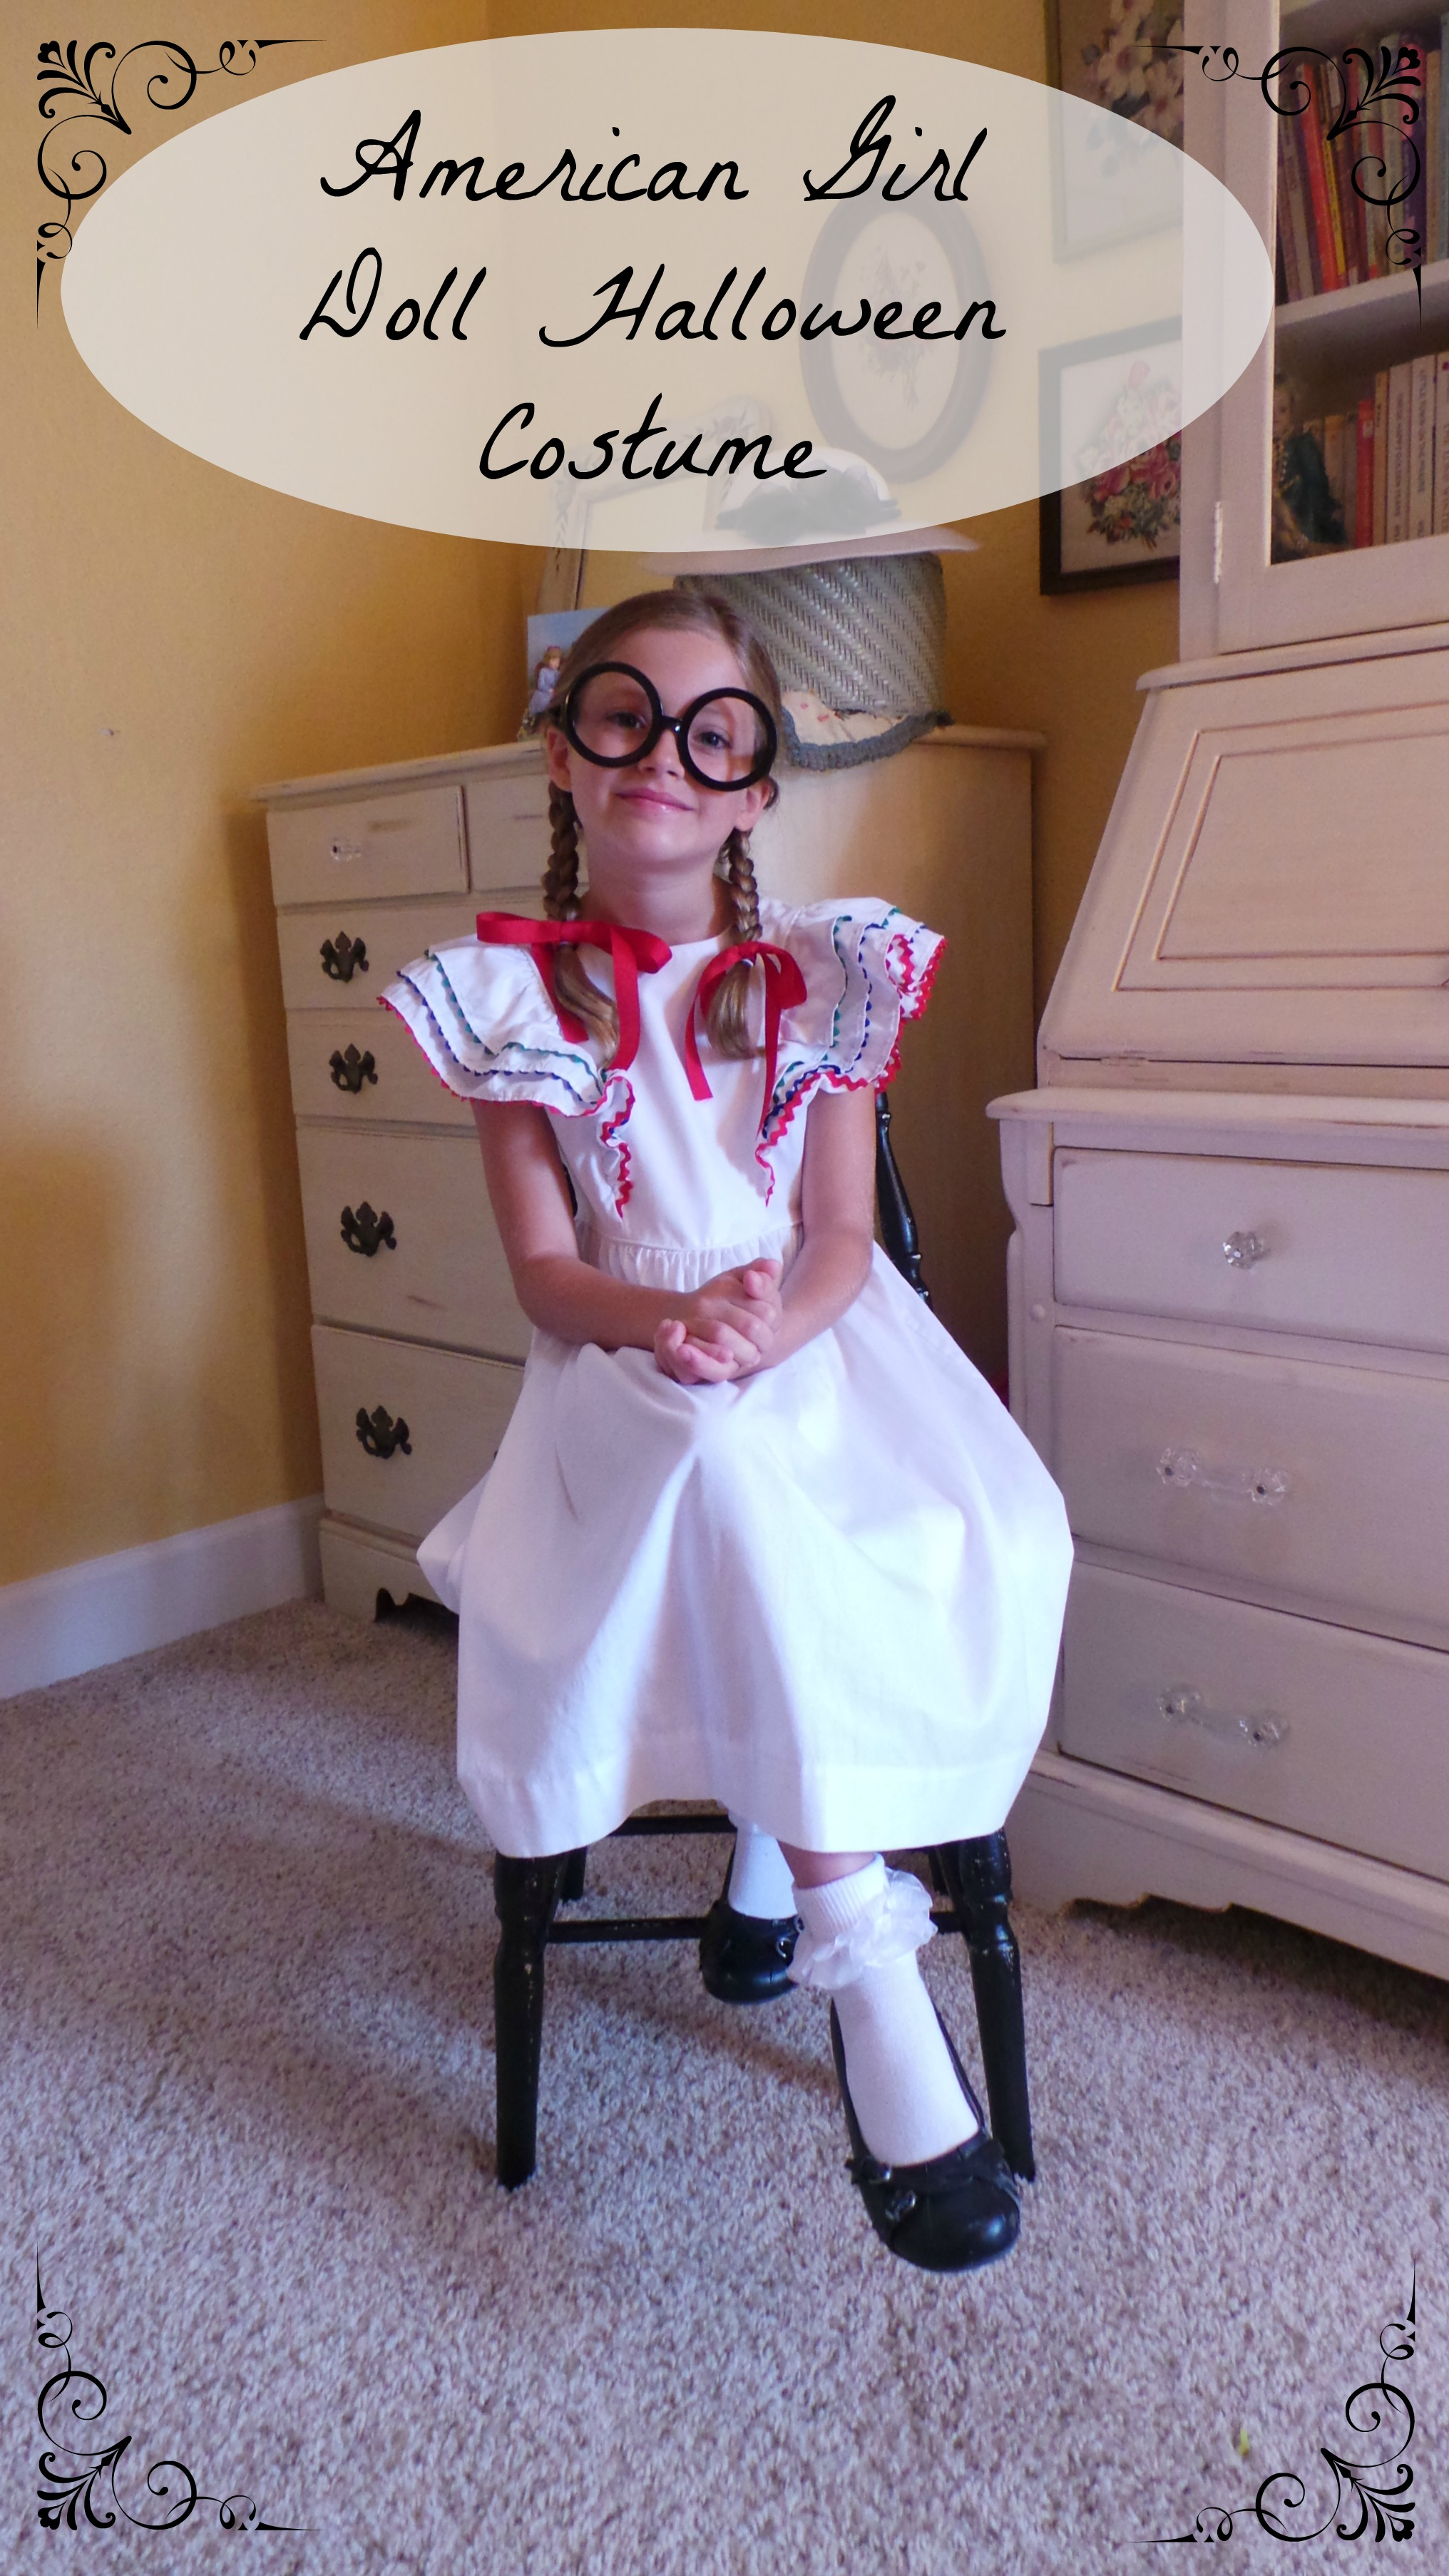 American-Girl-Doll-Halloween-Costume